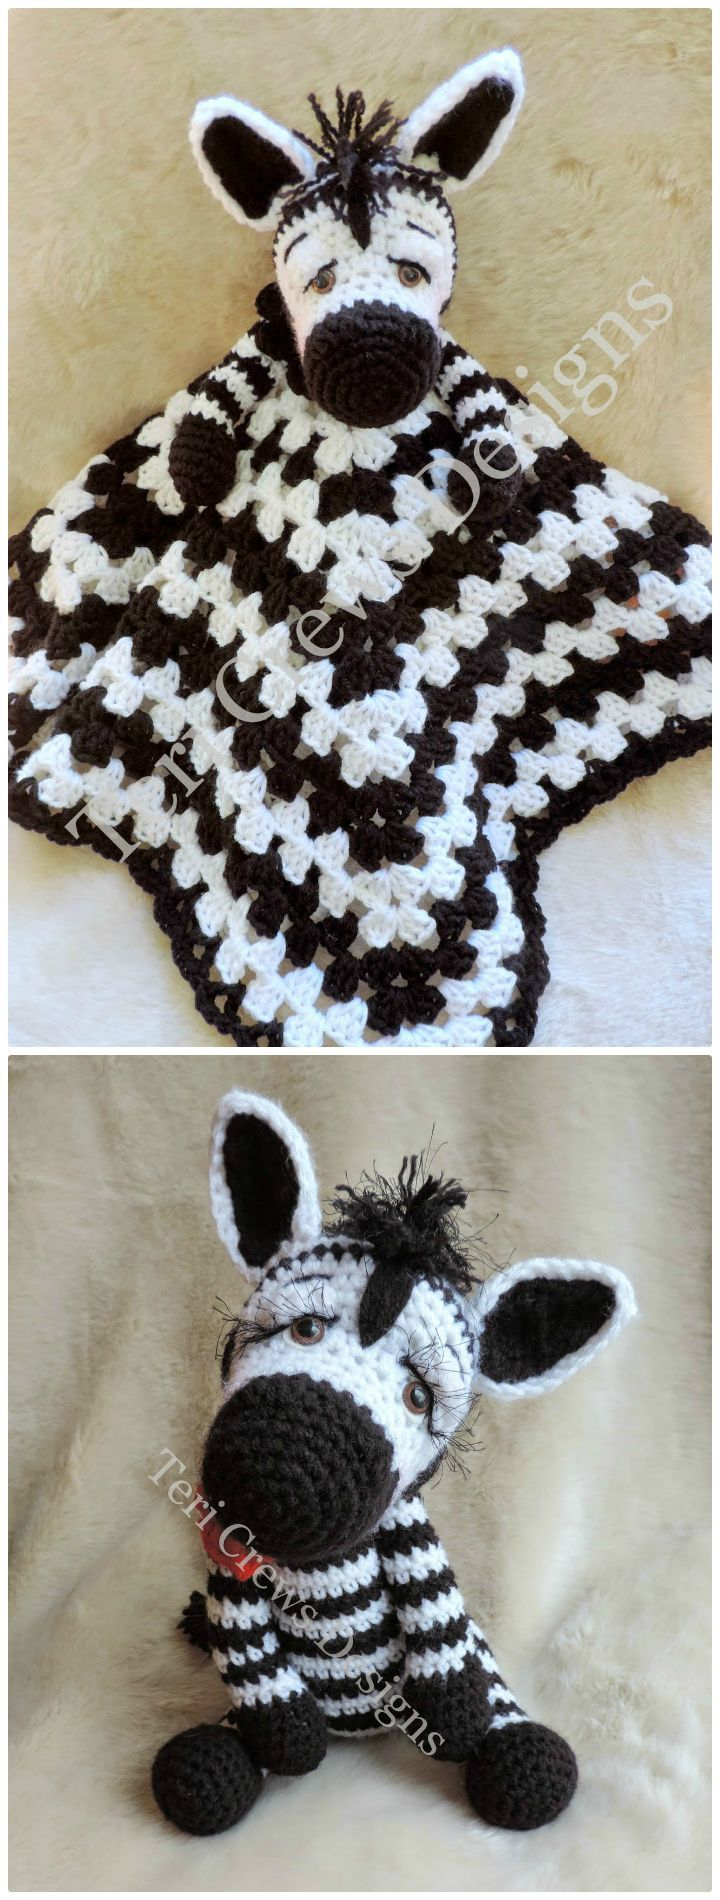 26 Free Crochet Zebra Patterns / Hat, Blanket, Amigurumi - DIY & Crafts